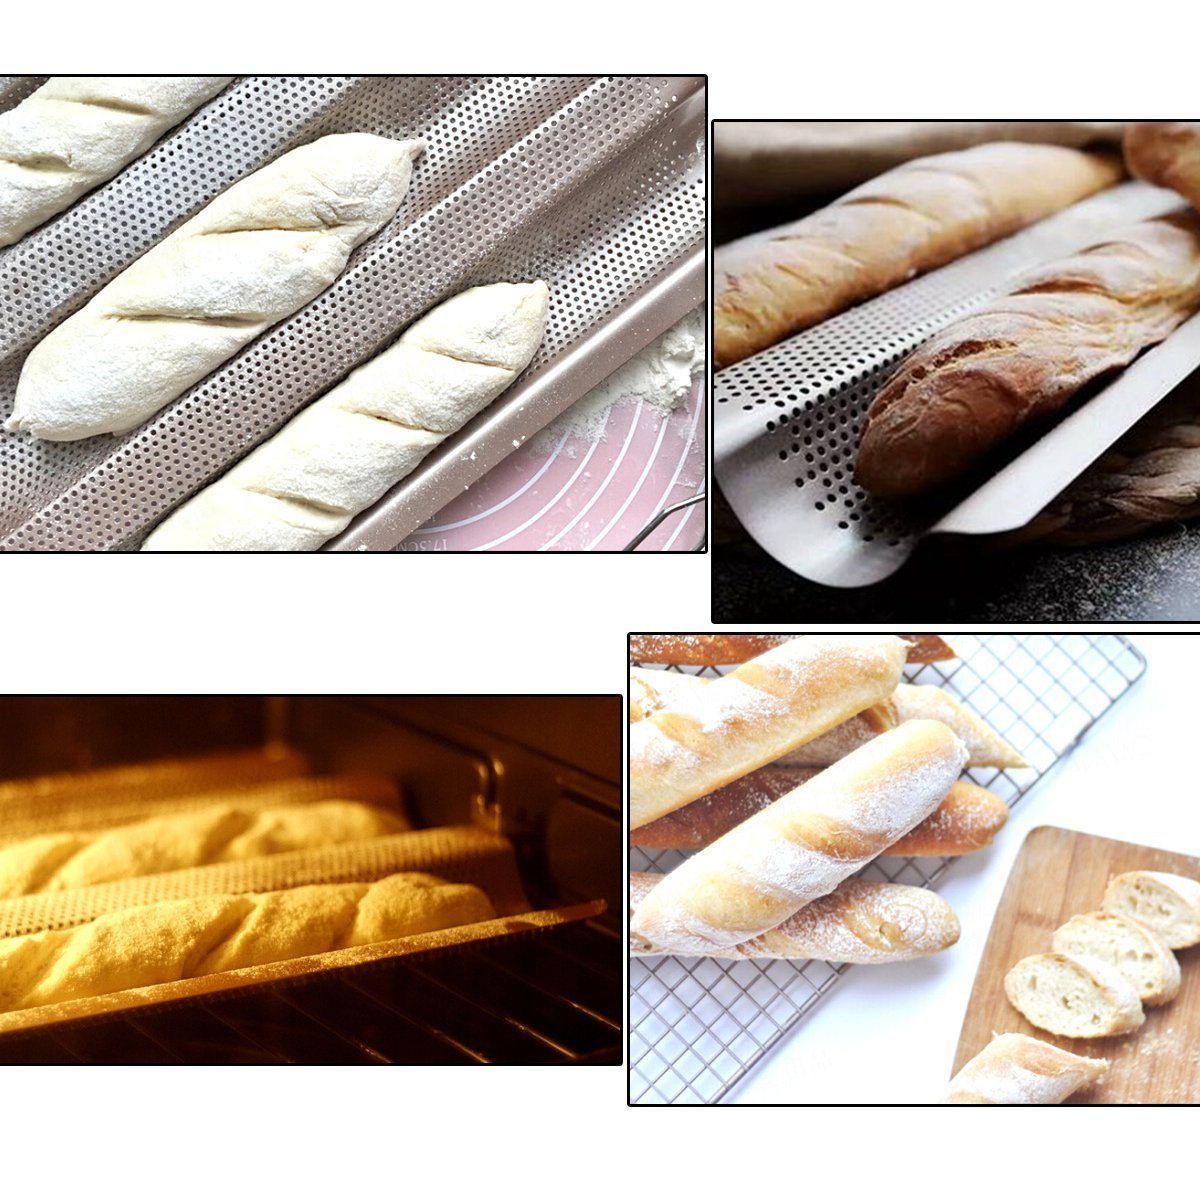 Delidge 3 Gutters Non-stick Aluminized Steel Perforated Baguette Pan French Bread Pan Wave Loaf Bake Mold,Loaf Baking Pan,Wave Baking Molds Commercial Baguette mold for Artisan Bread 2x10.5inch by Delidge (Image #7)